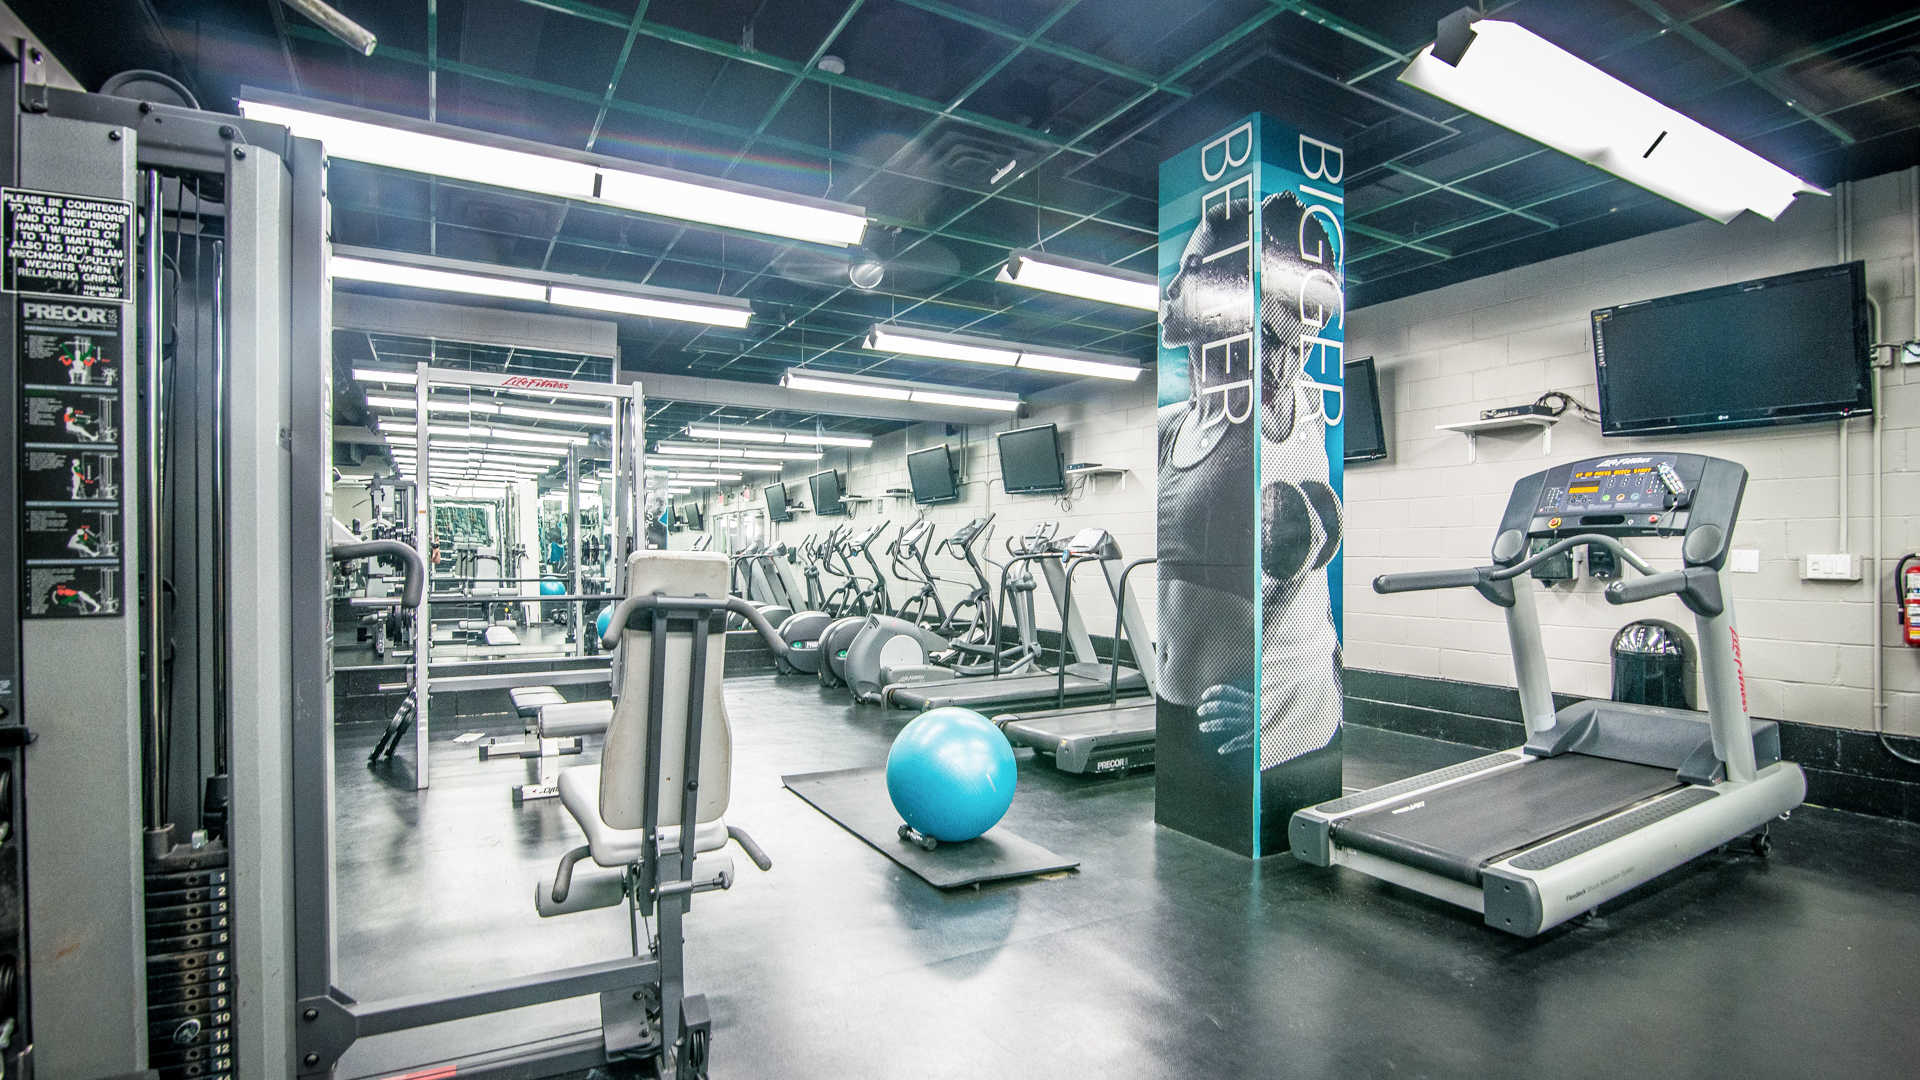 Hudson crossing apartments fitness center